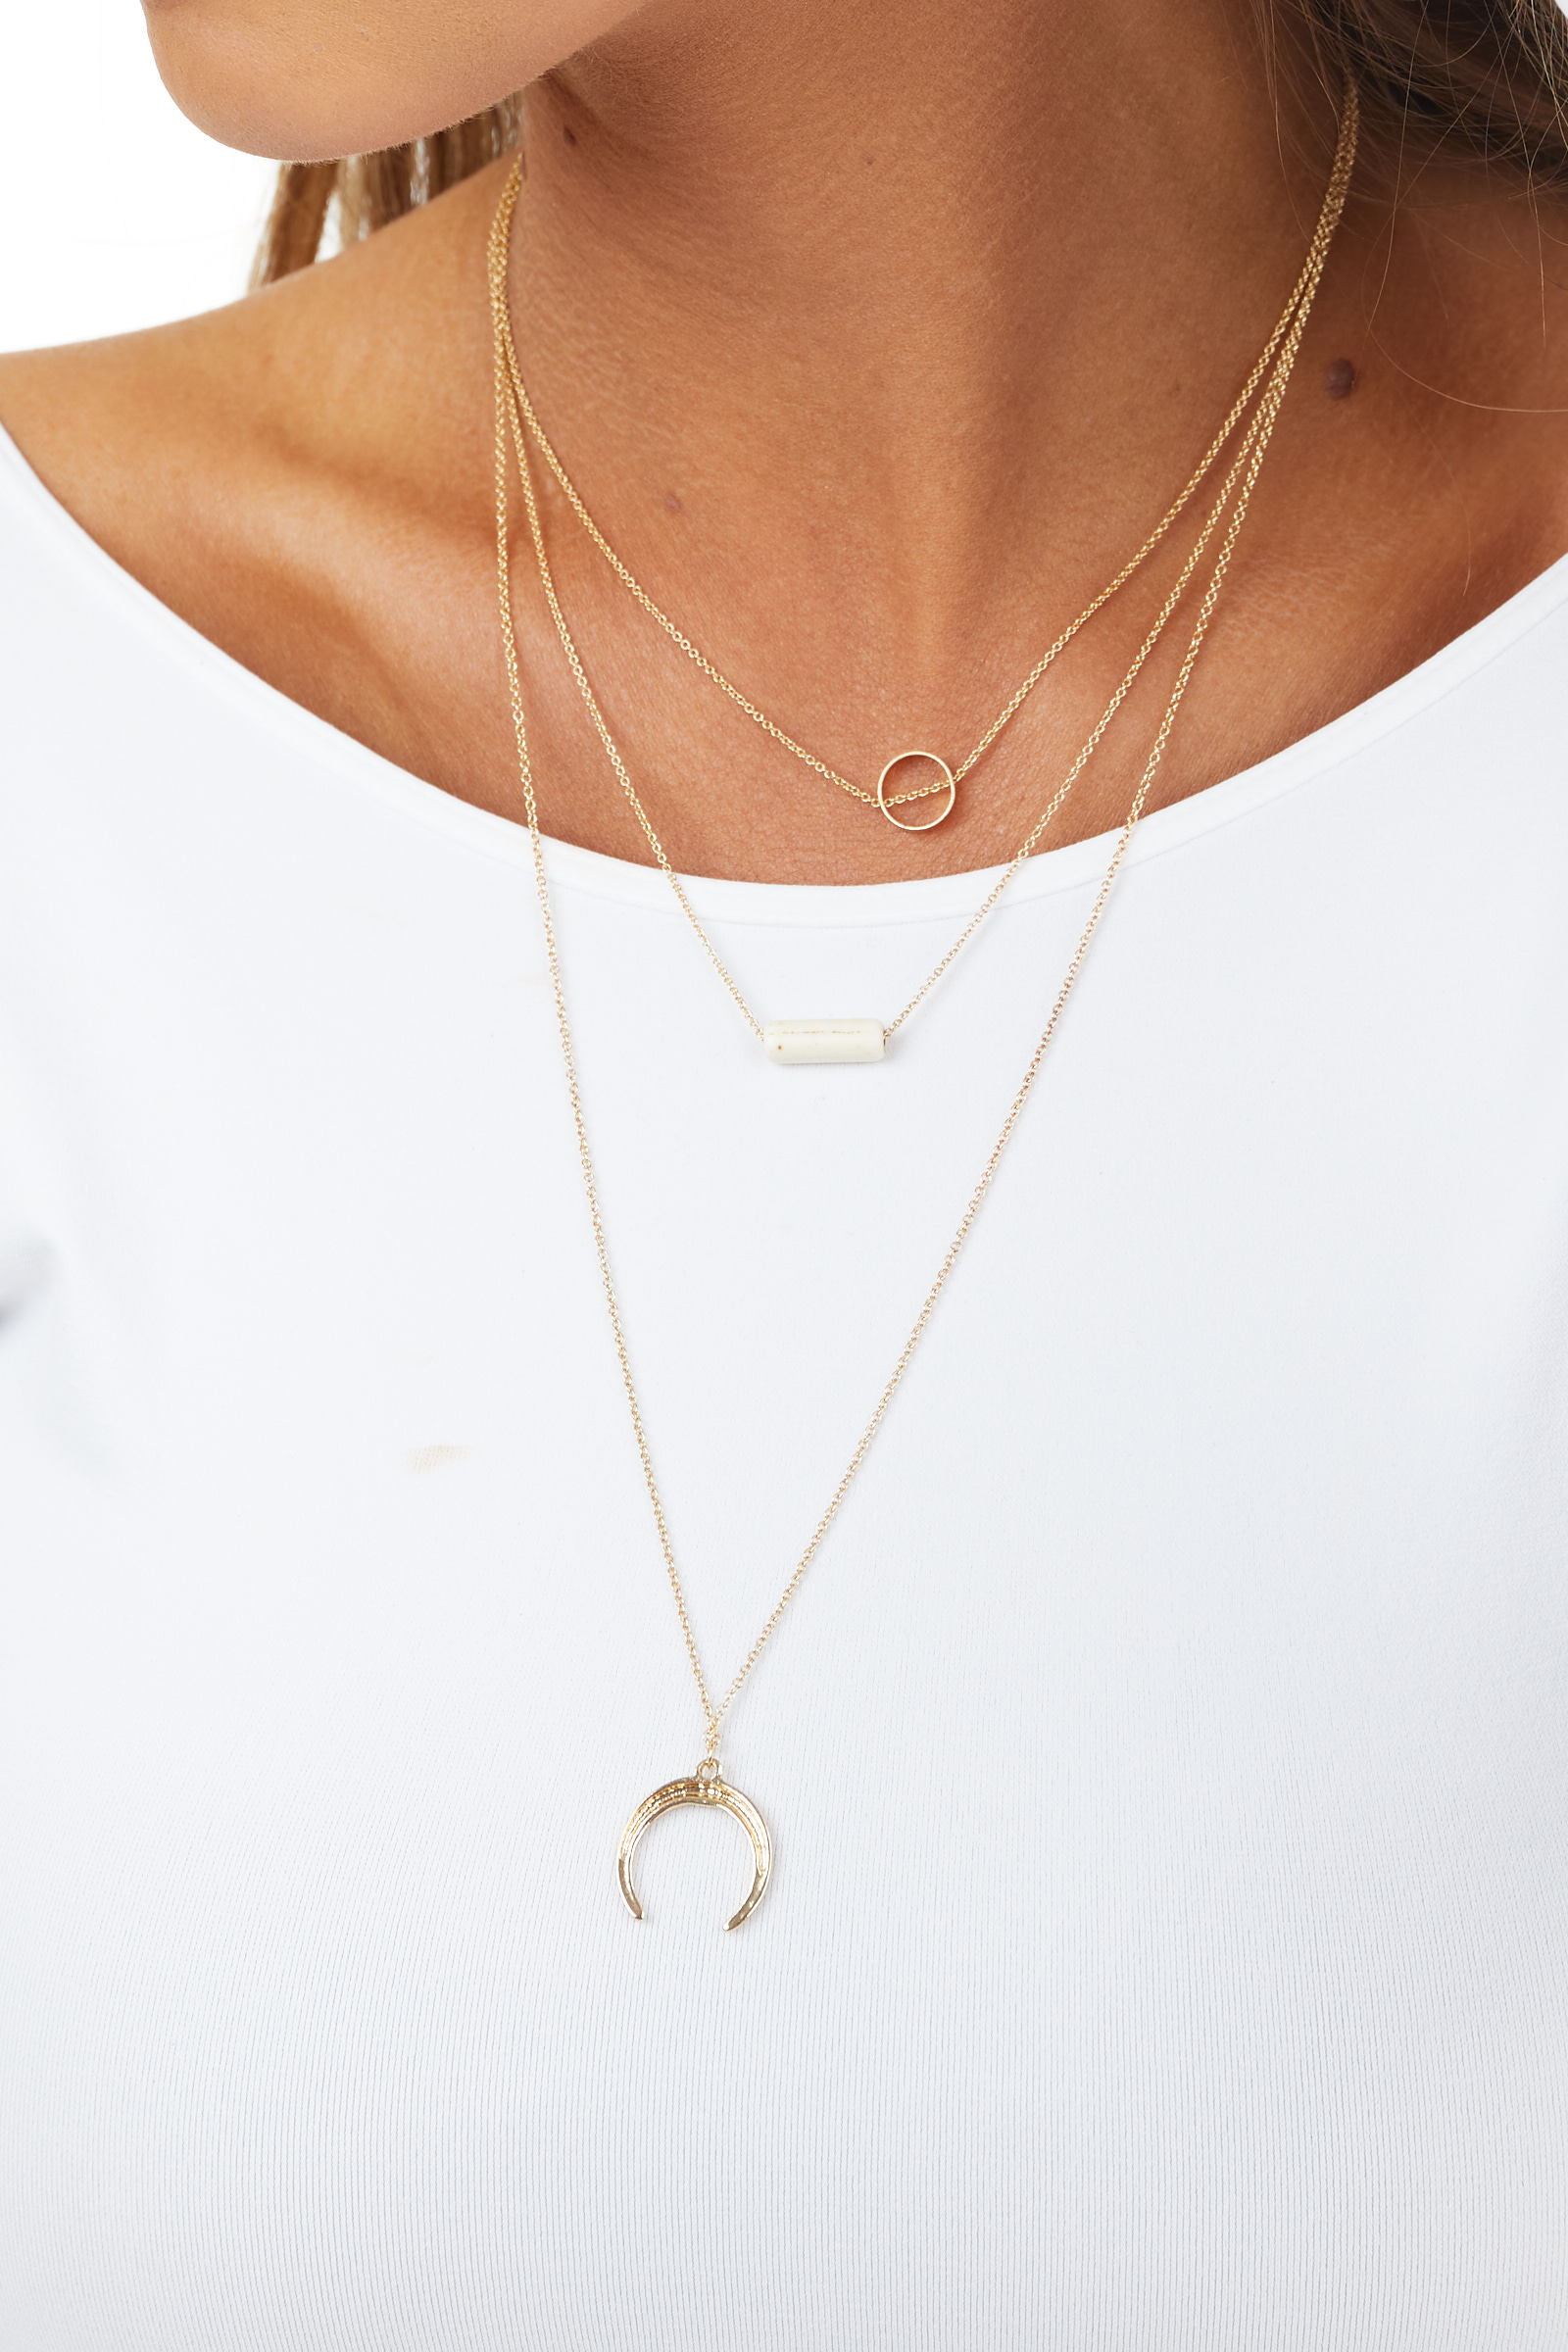 Gold Long Layered Necklace with Circle and Ivory Charms